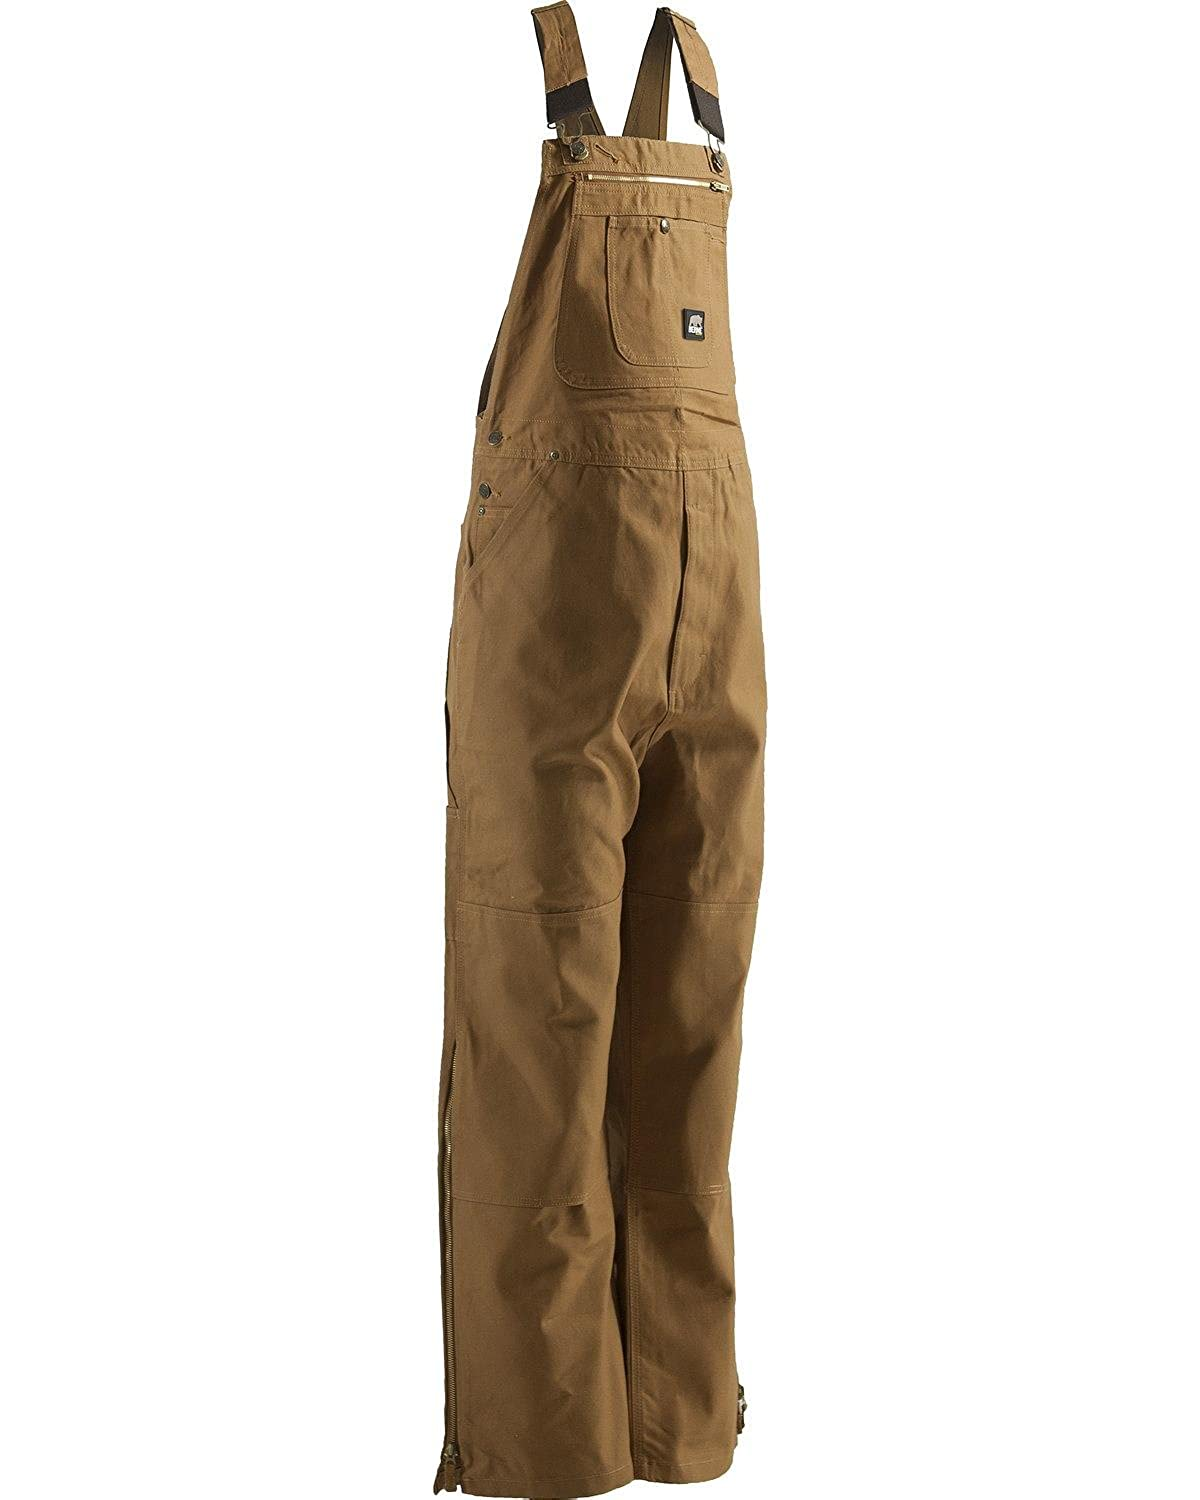 Berne Men's Original Unlined Duck Bib Overalls Tall - B1067bdt